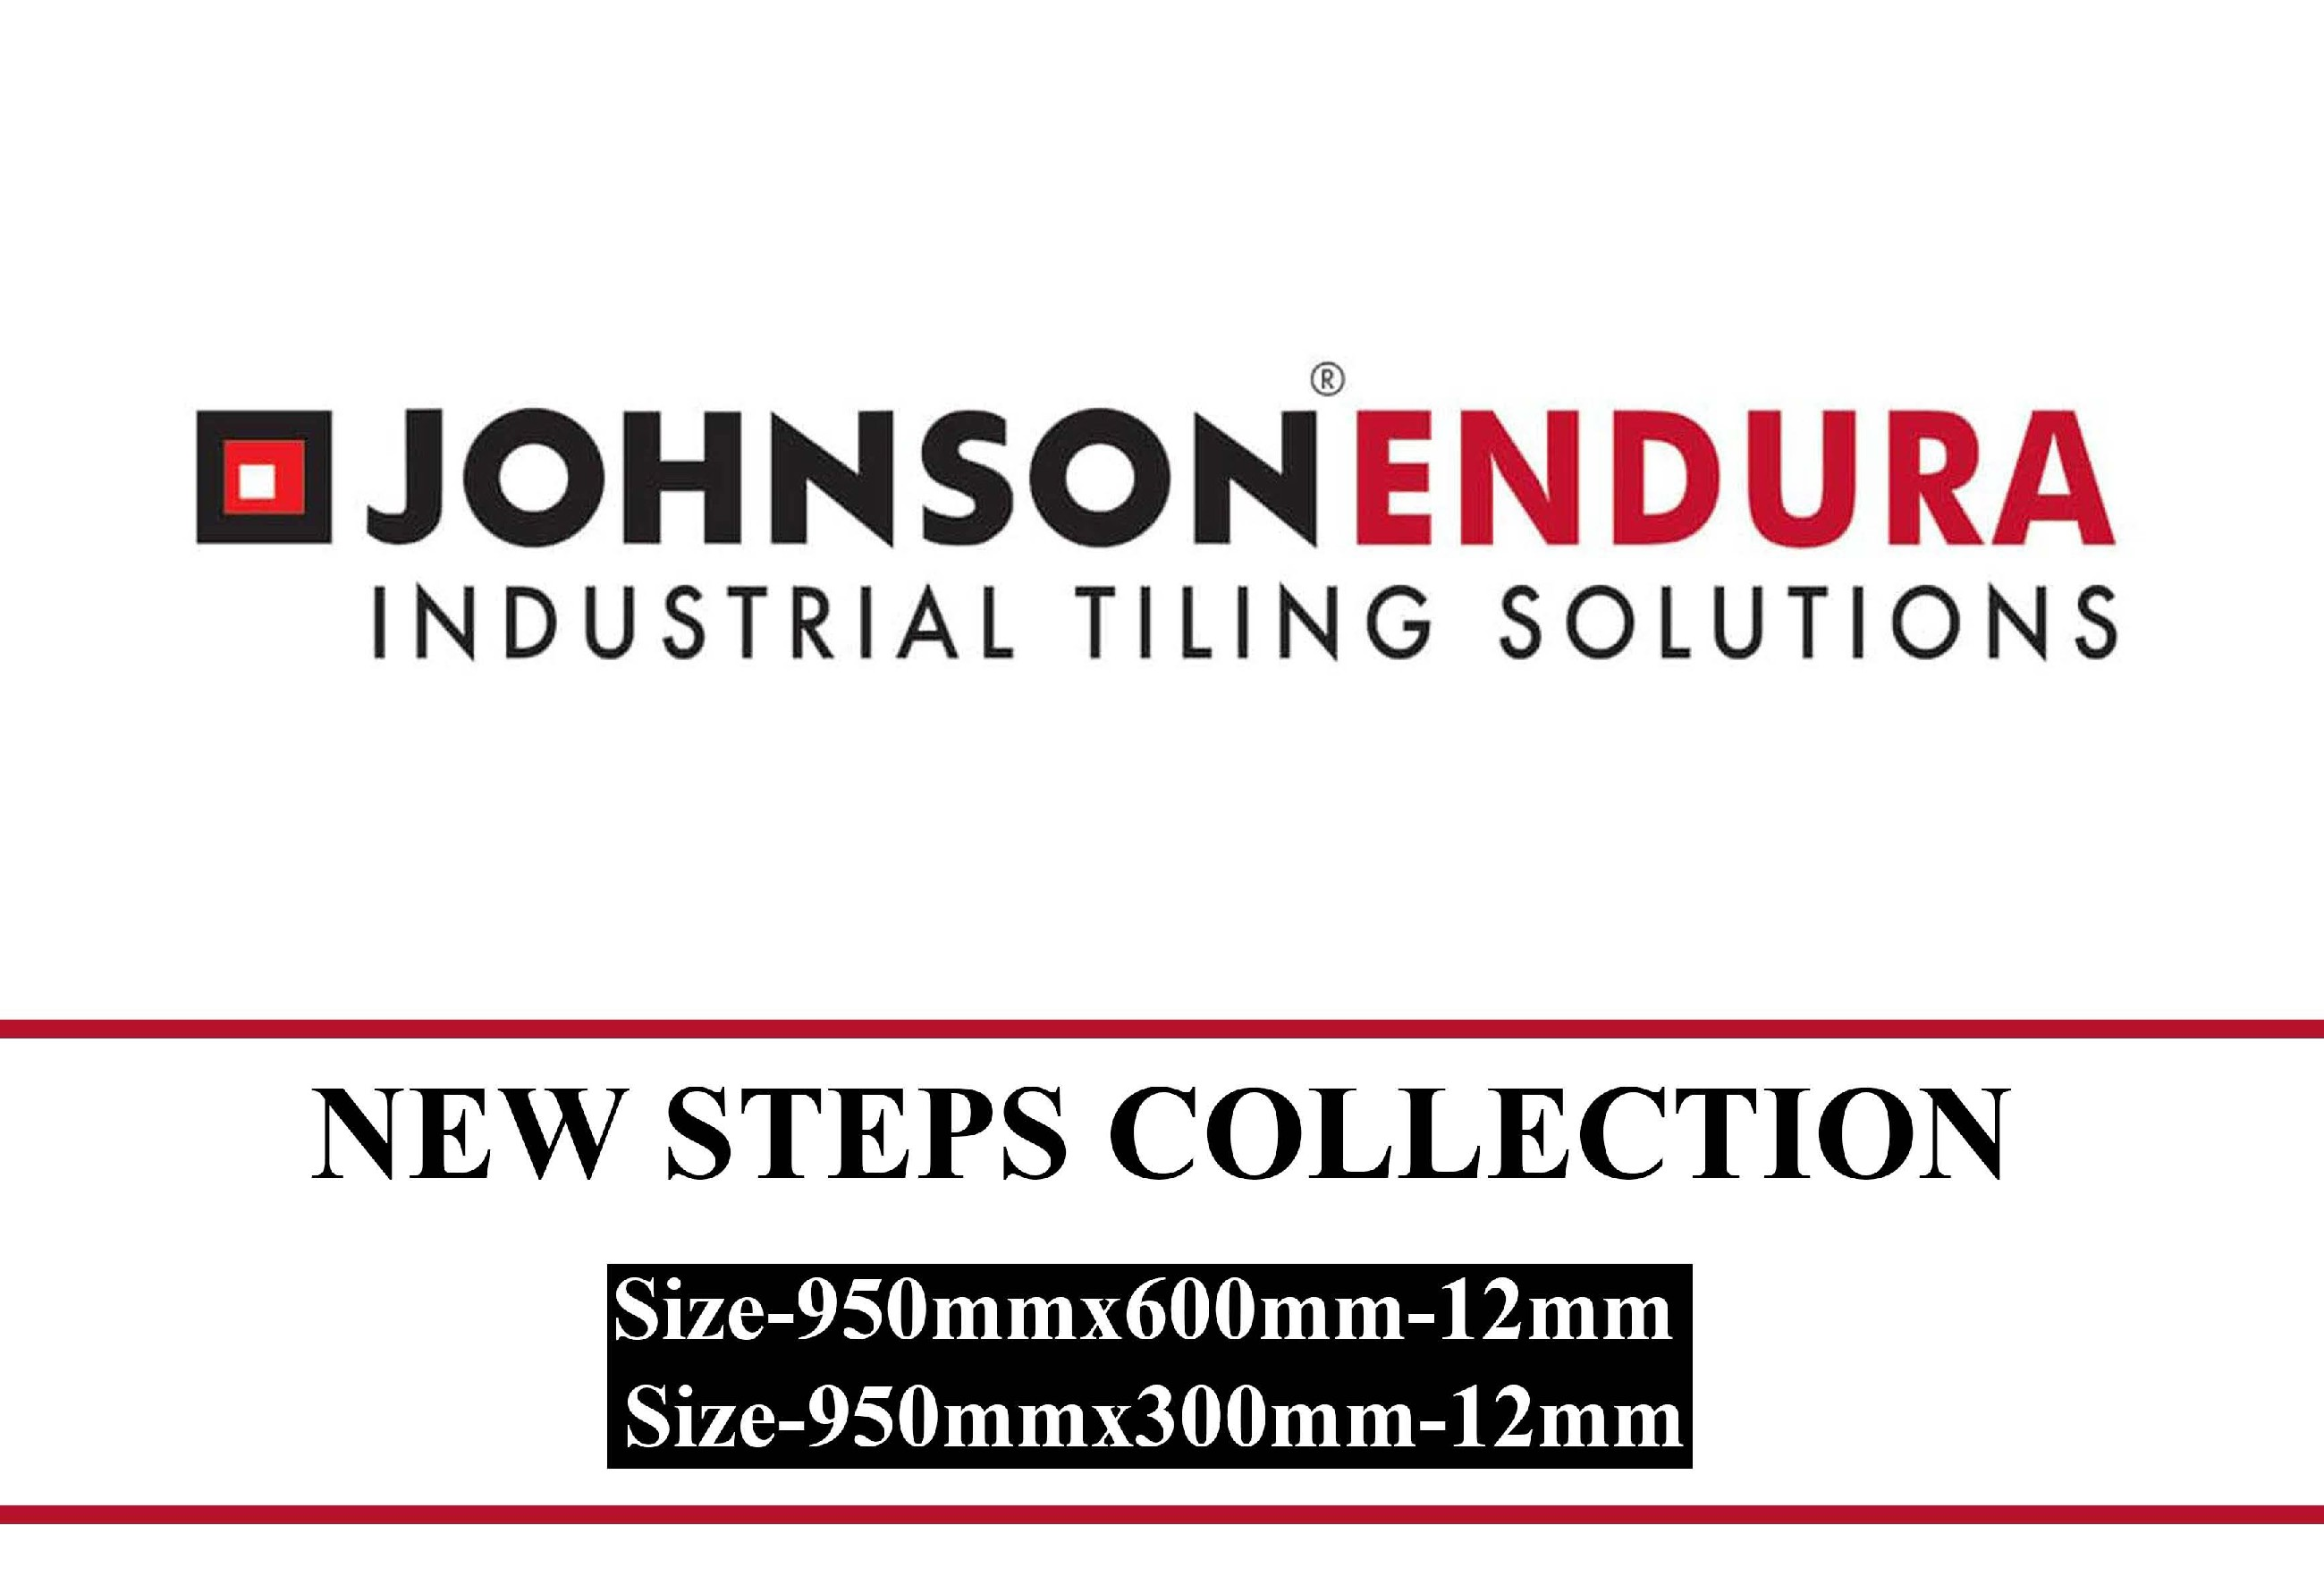 JOHNSON ENDURA Products Catalogue